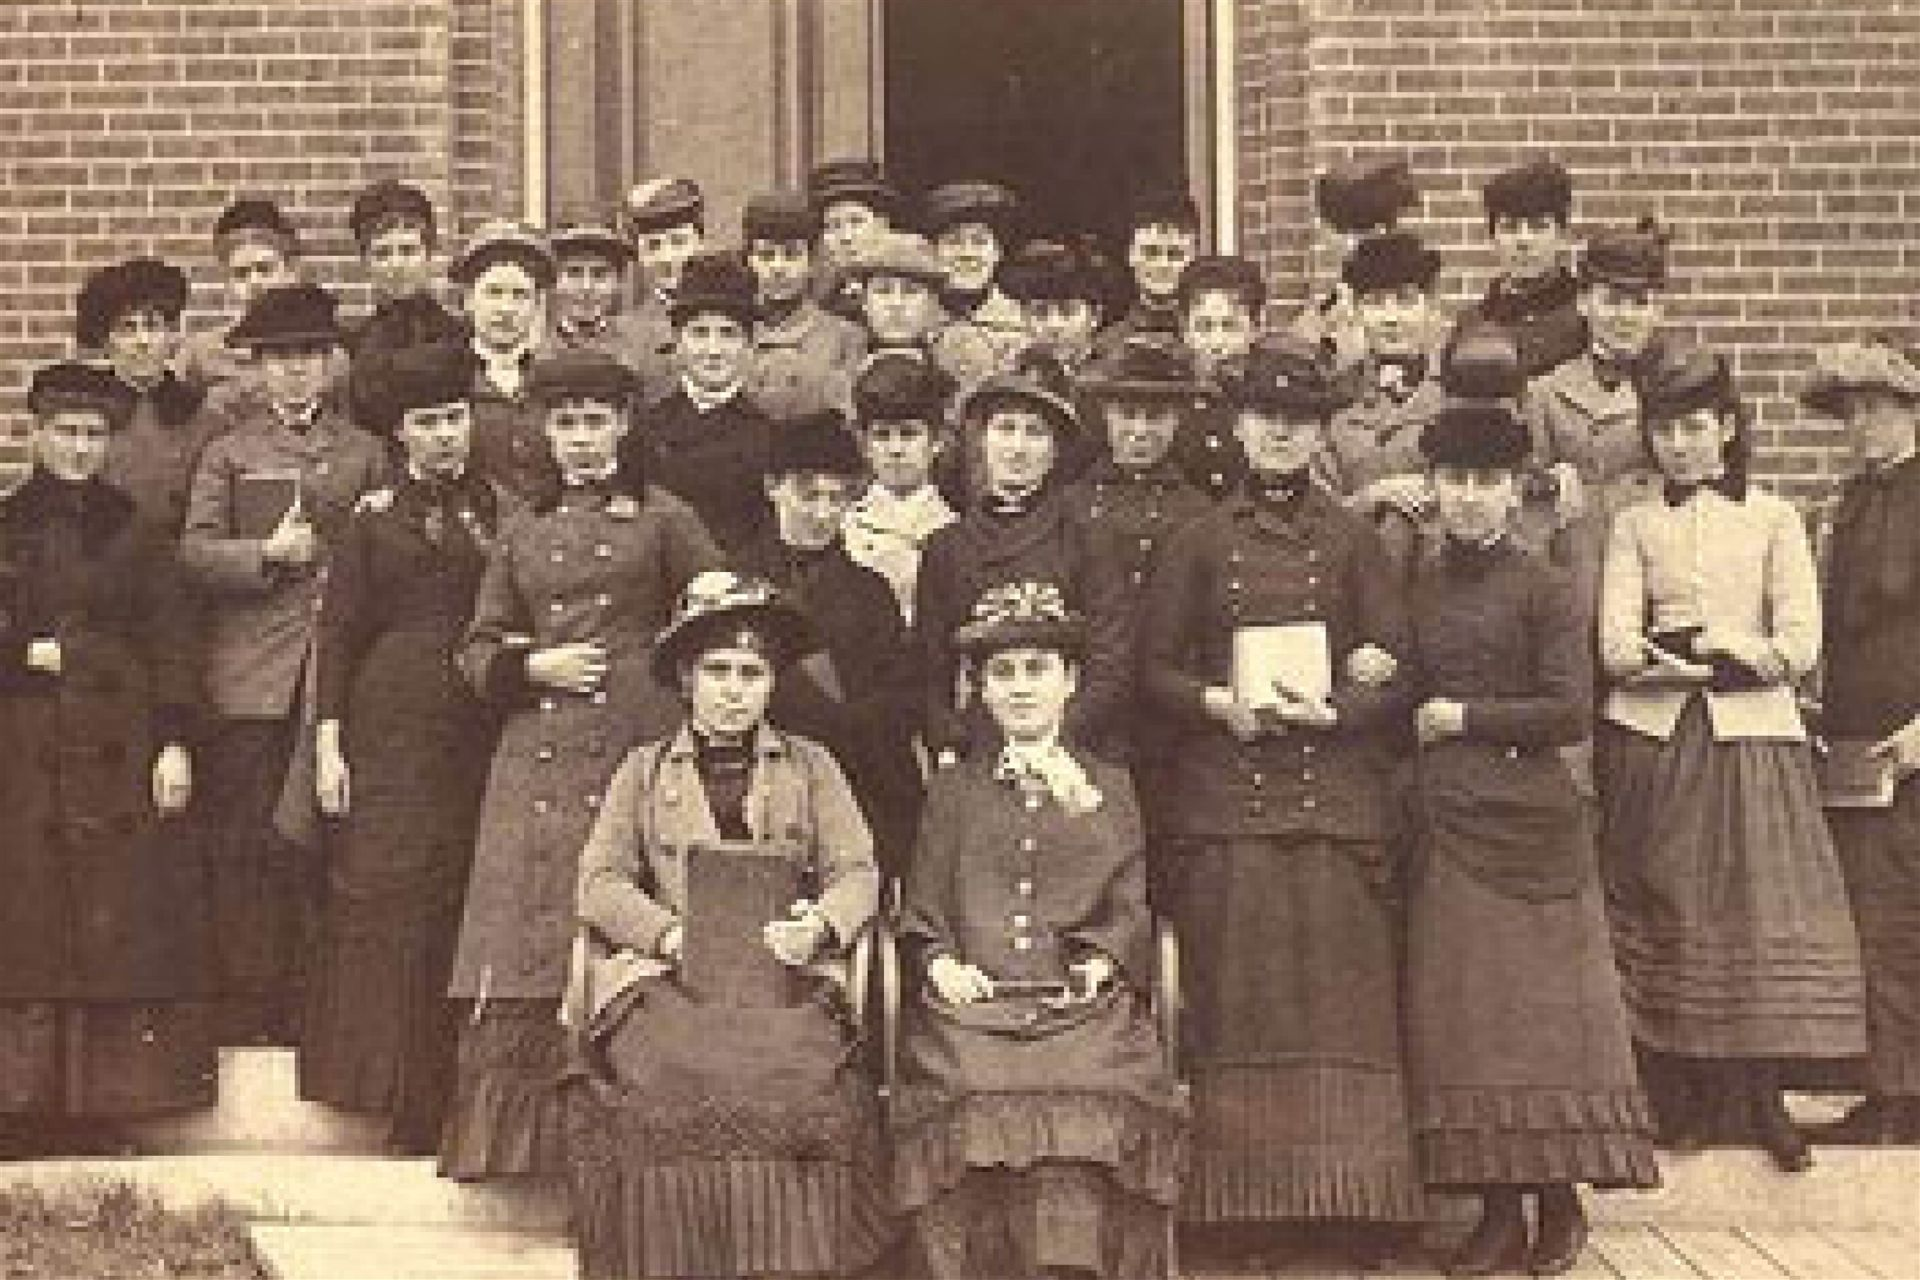 A female collegiate institute opens, offering degrees to women until 1909.